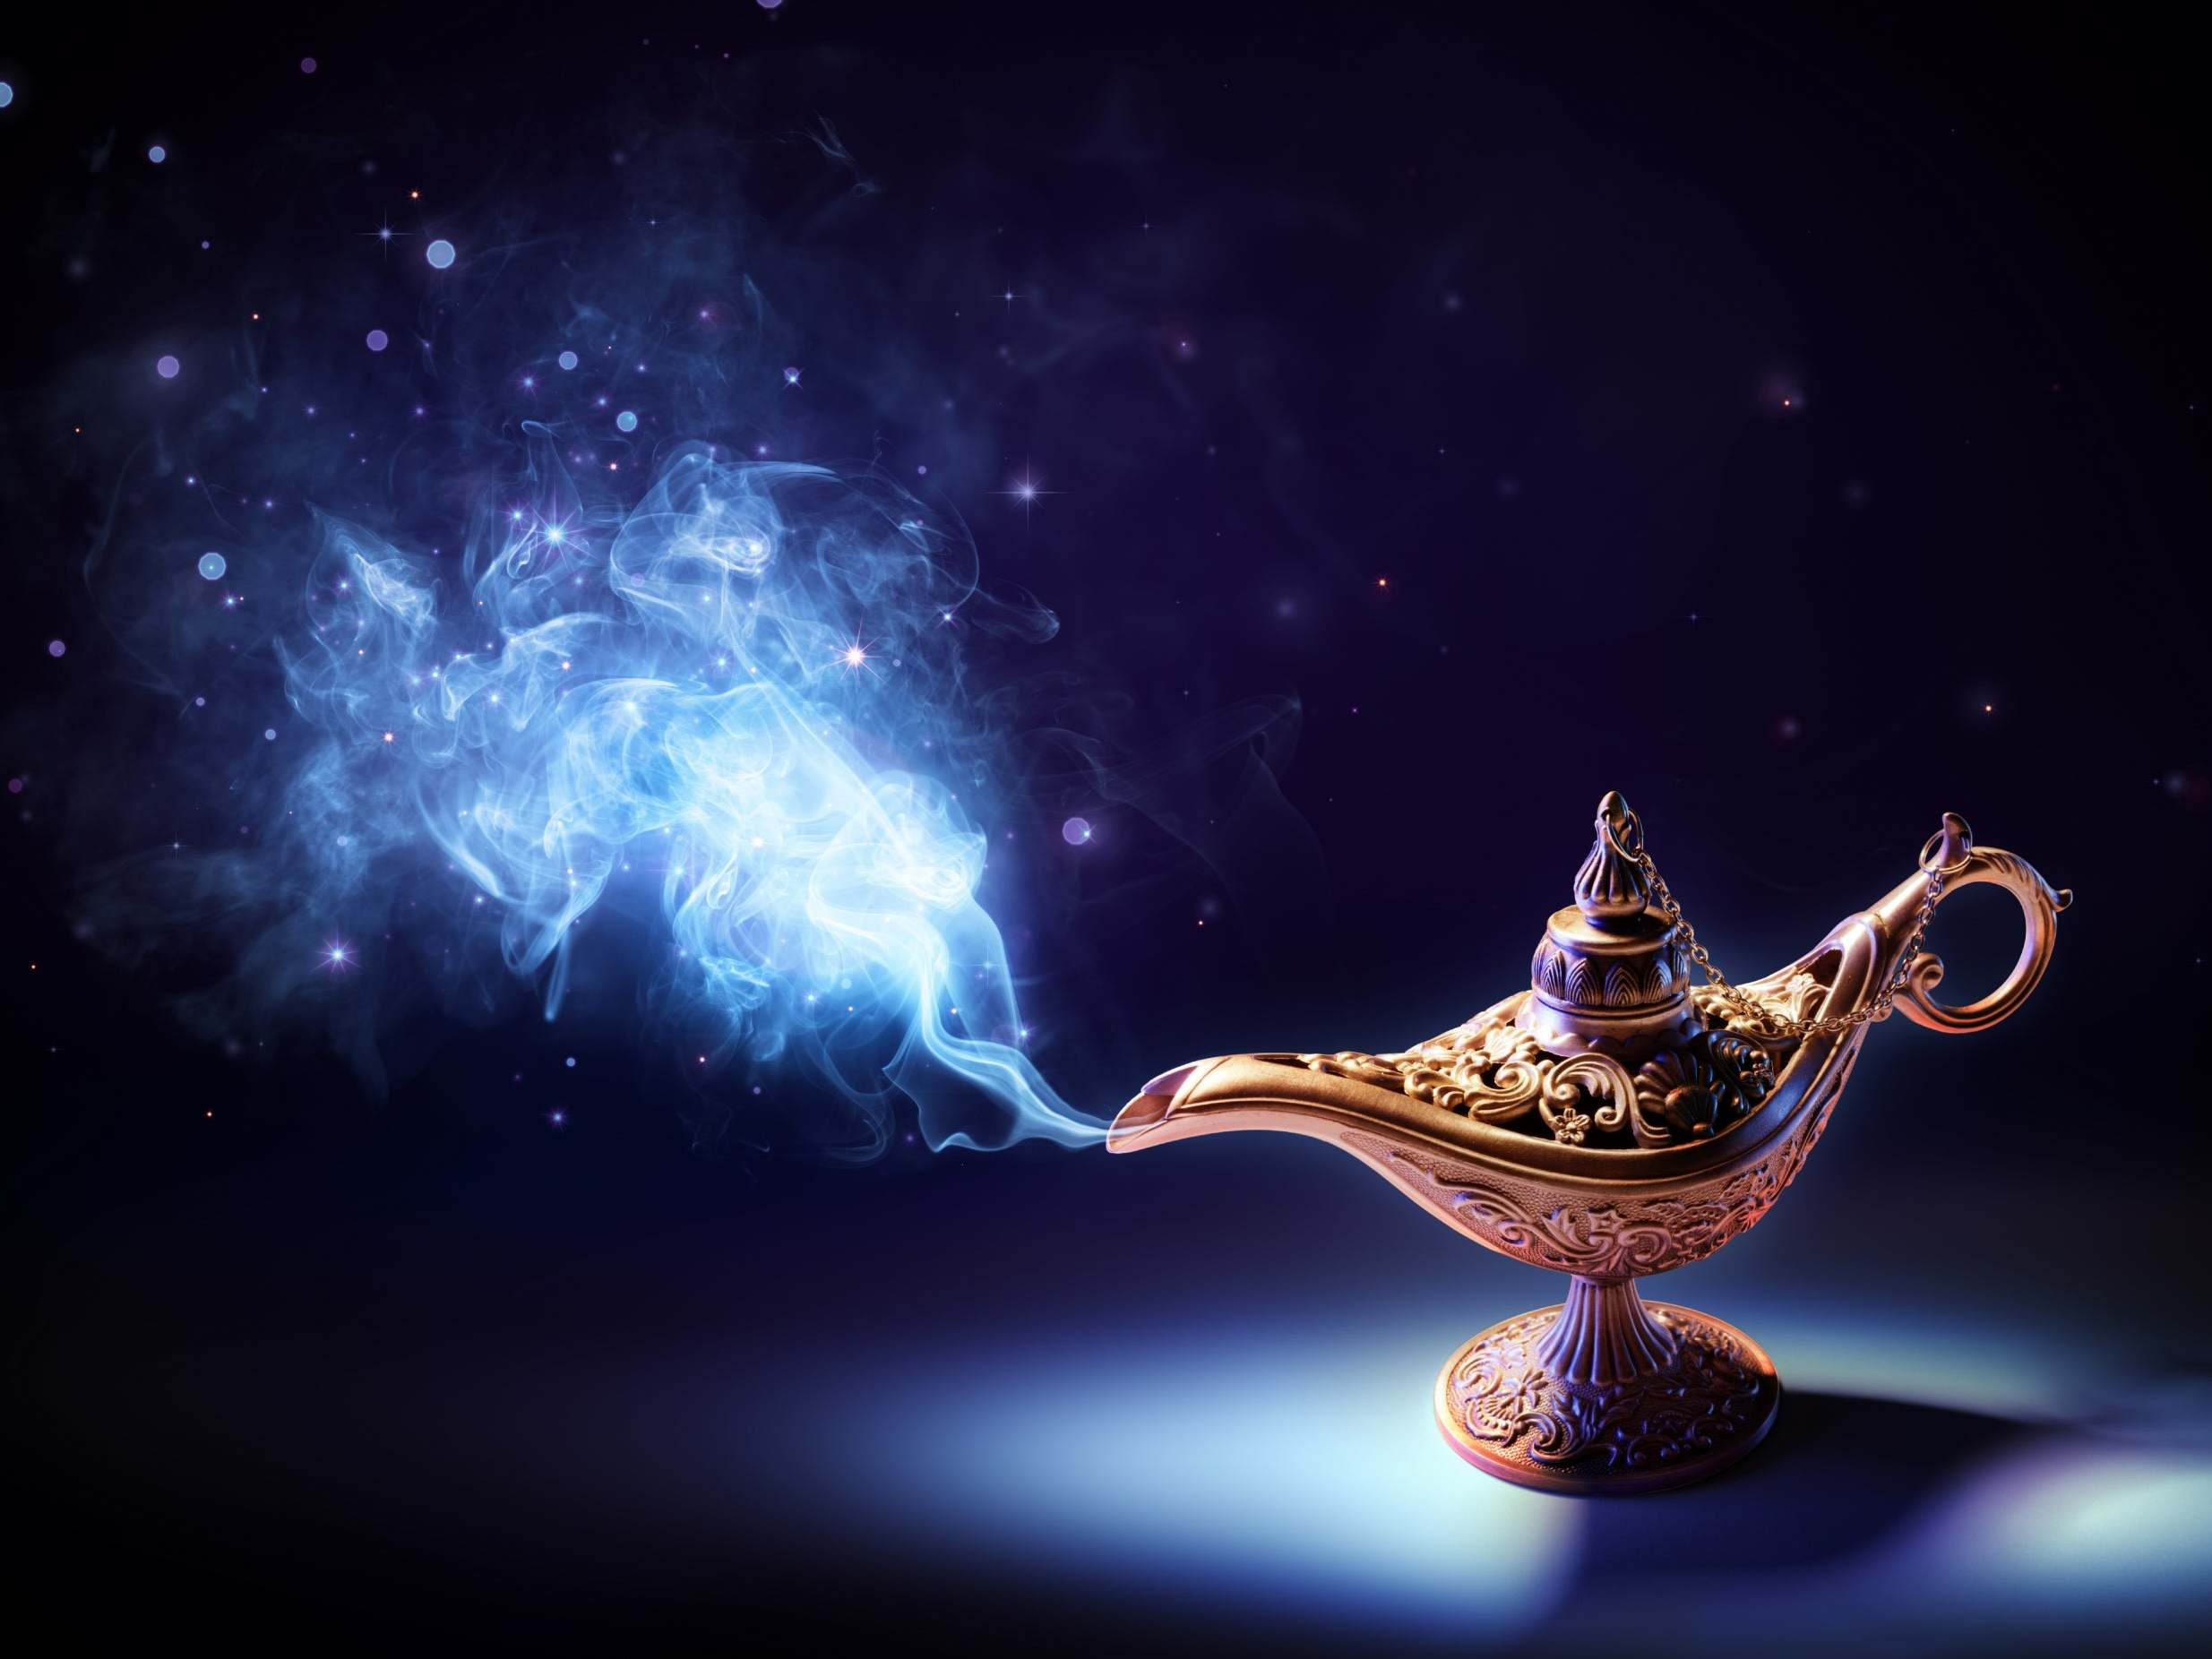 Mea Culpa: Let the genie out of the lamp, not the bottle